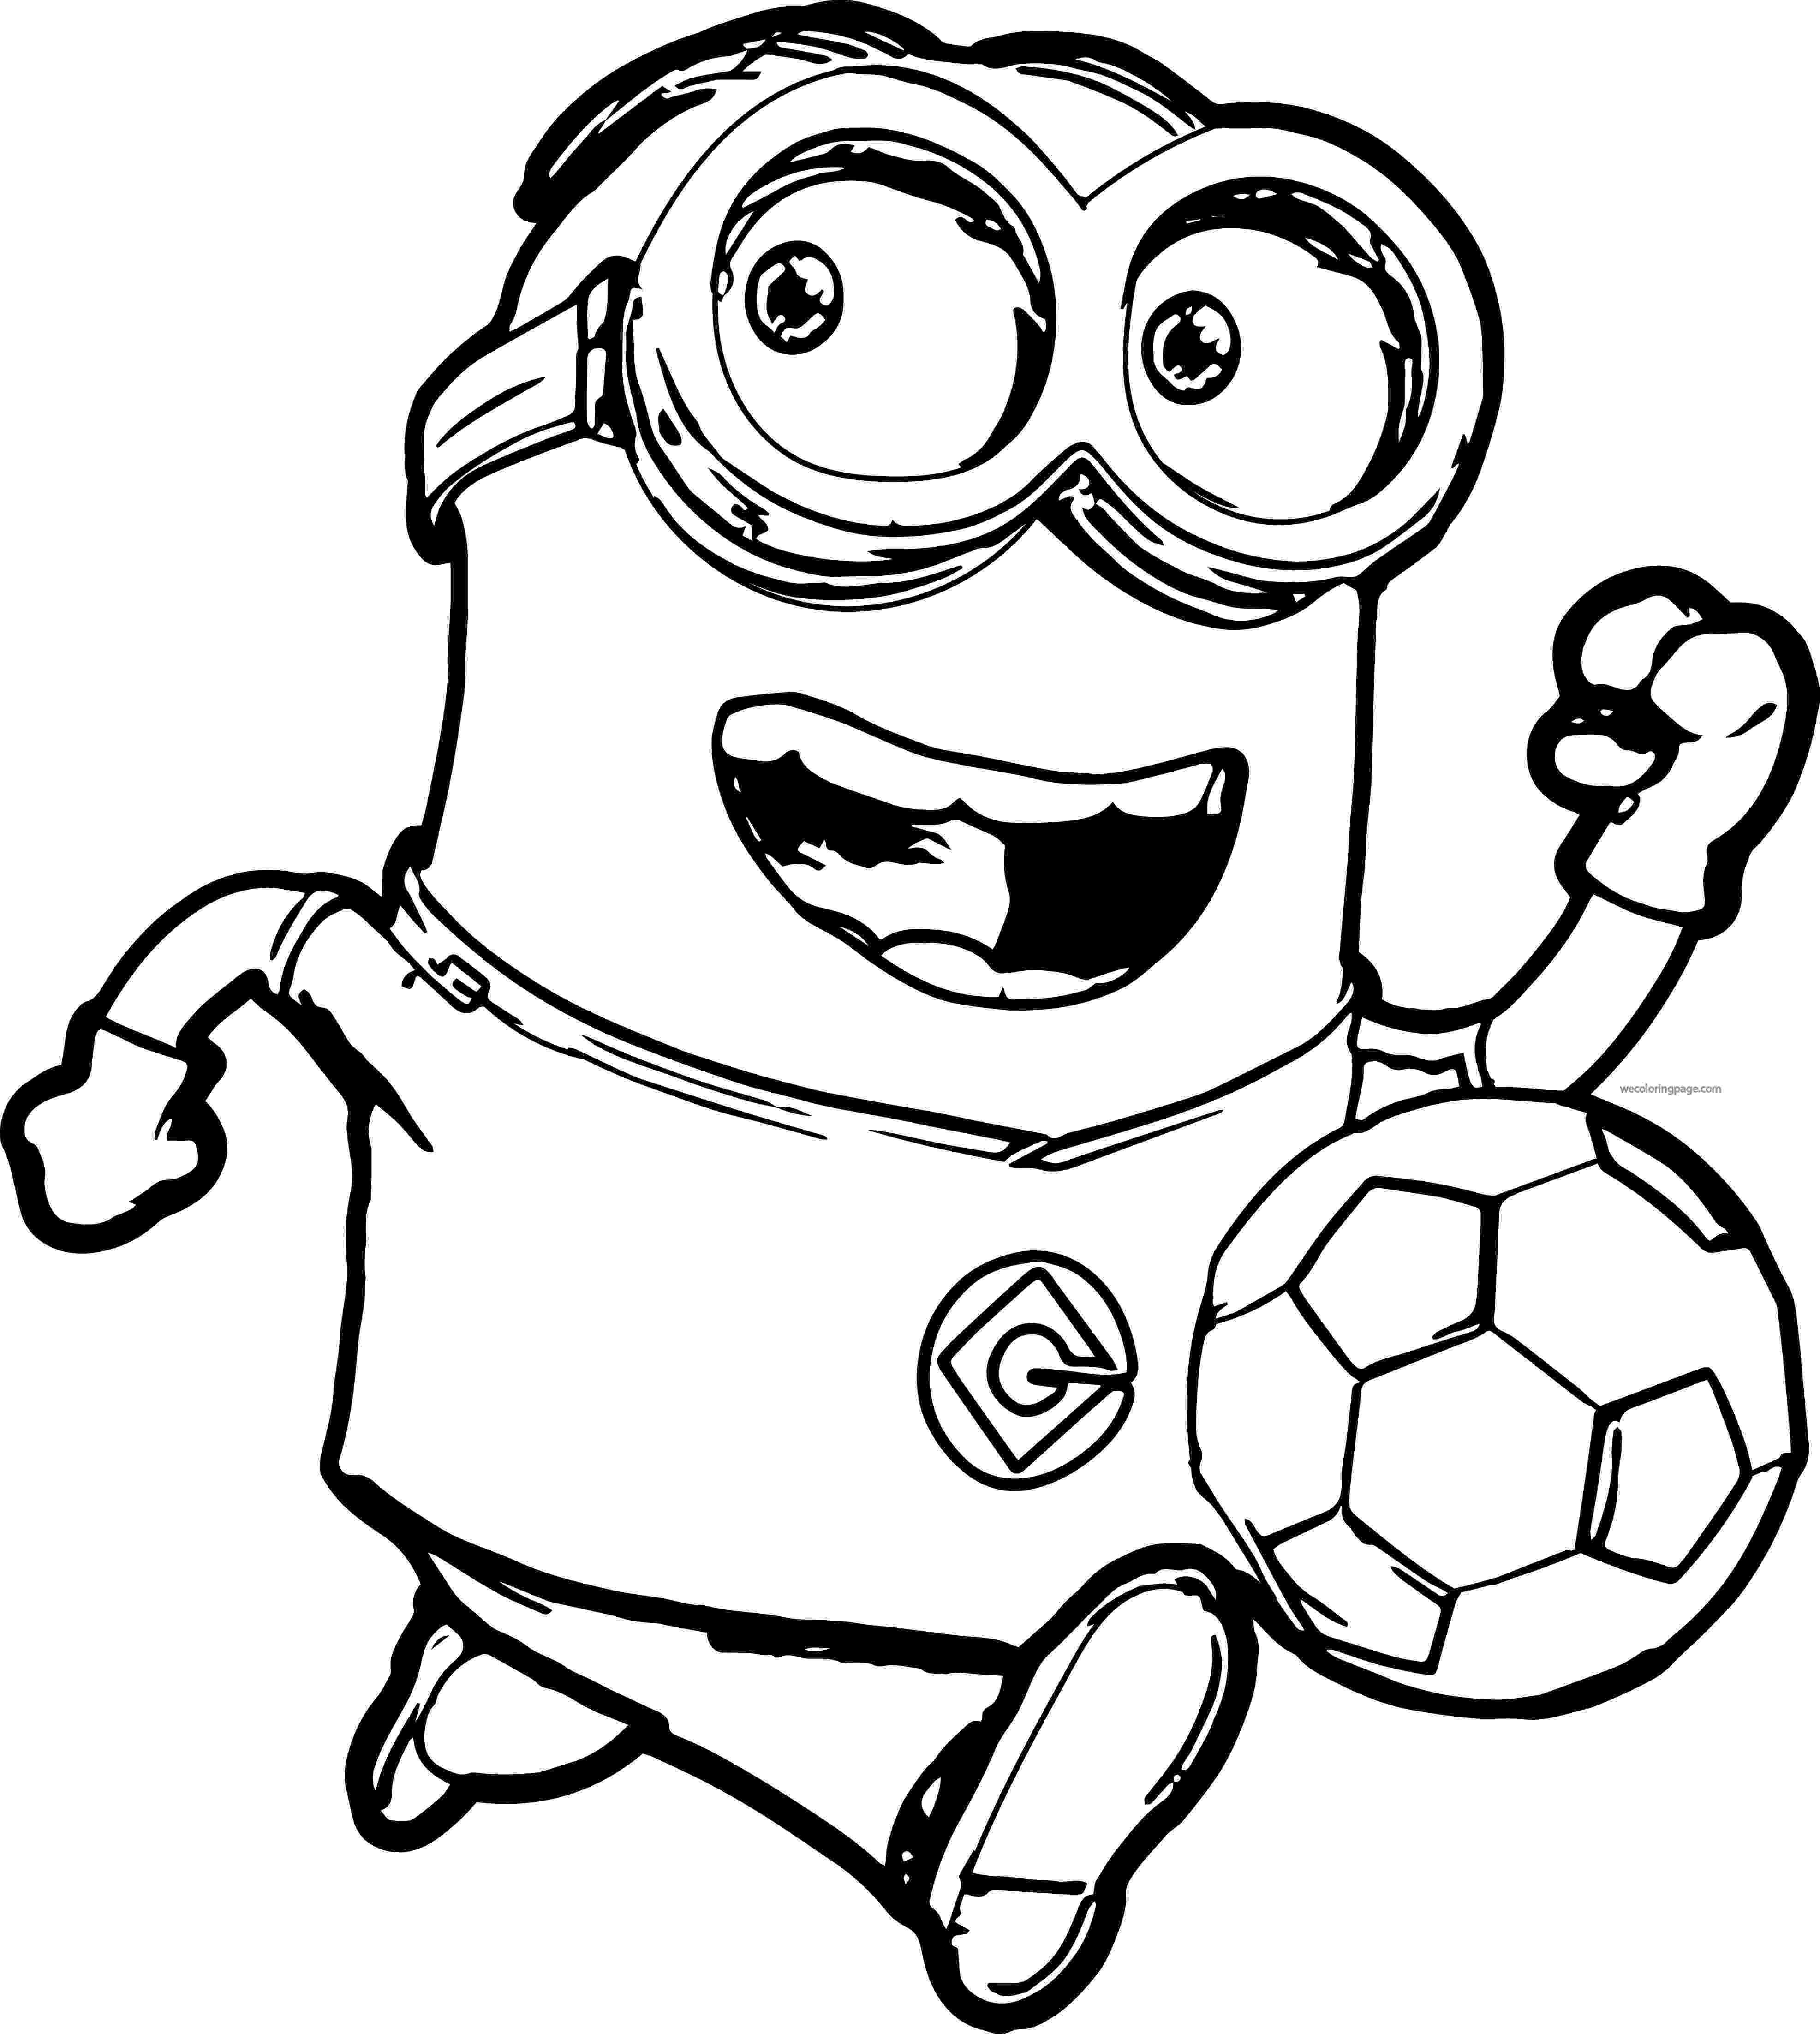 minion pictures to color and print minion coloring pages best coloring pages for kids color print to minion and pictures